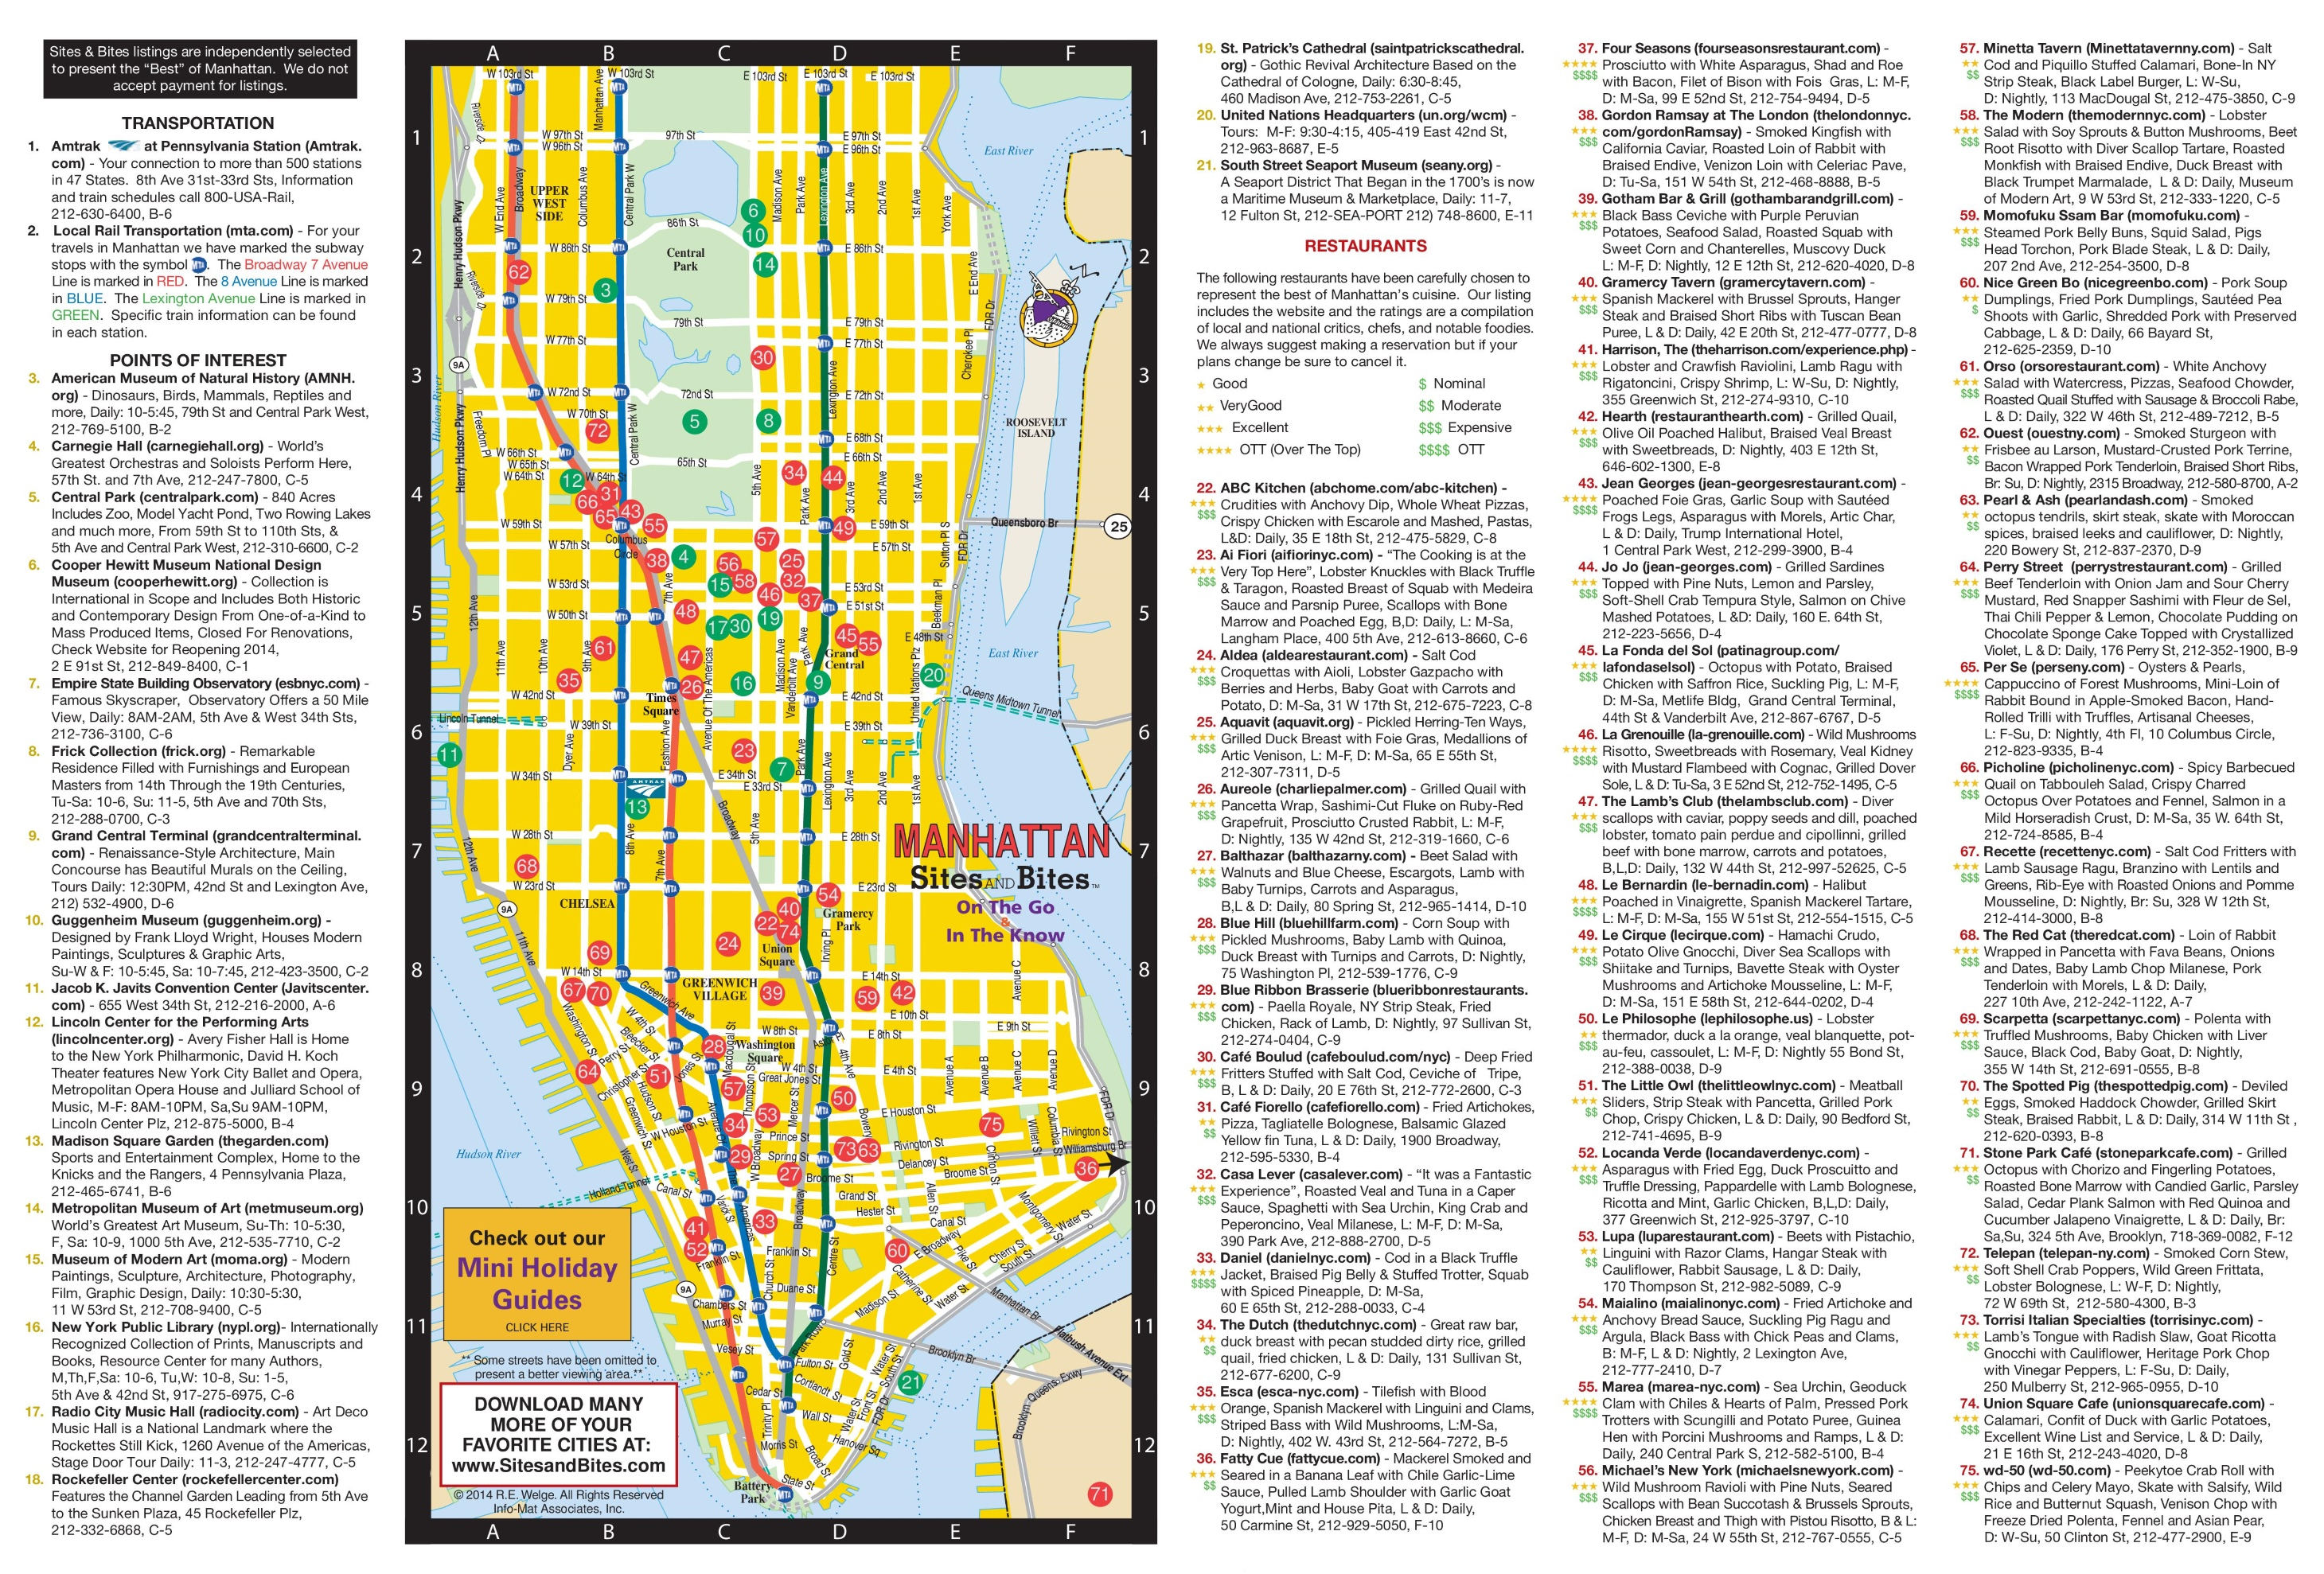 New York City Maps NYC – New York City Tourist Attractions Map